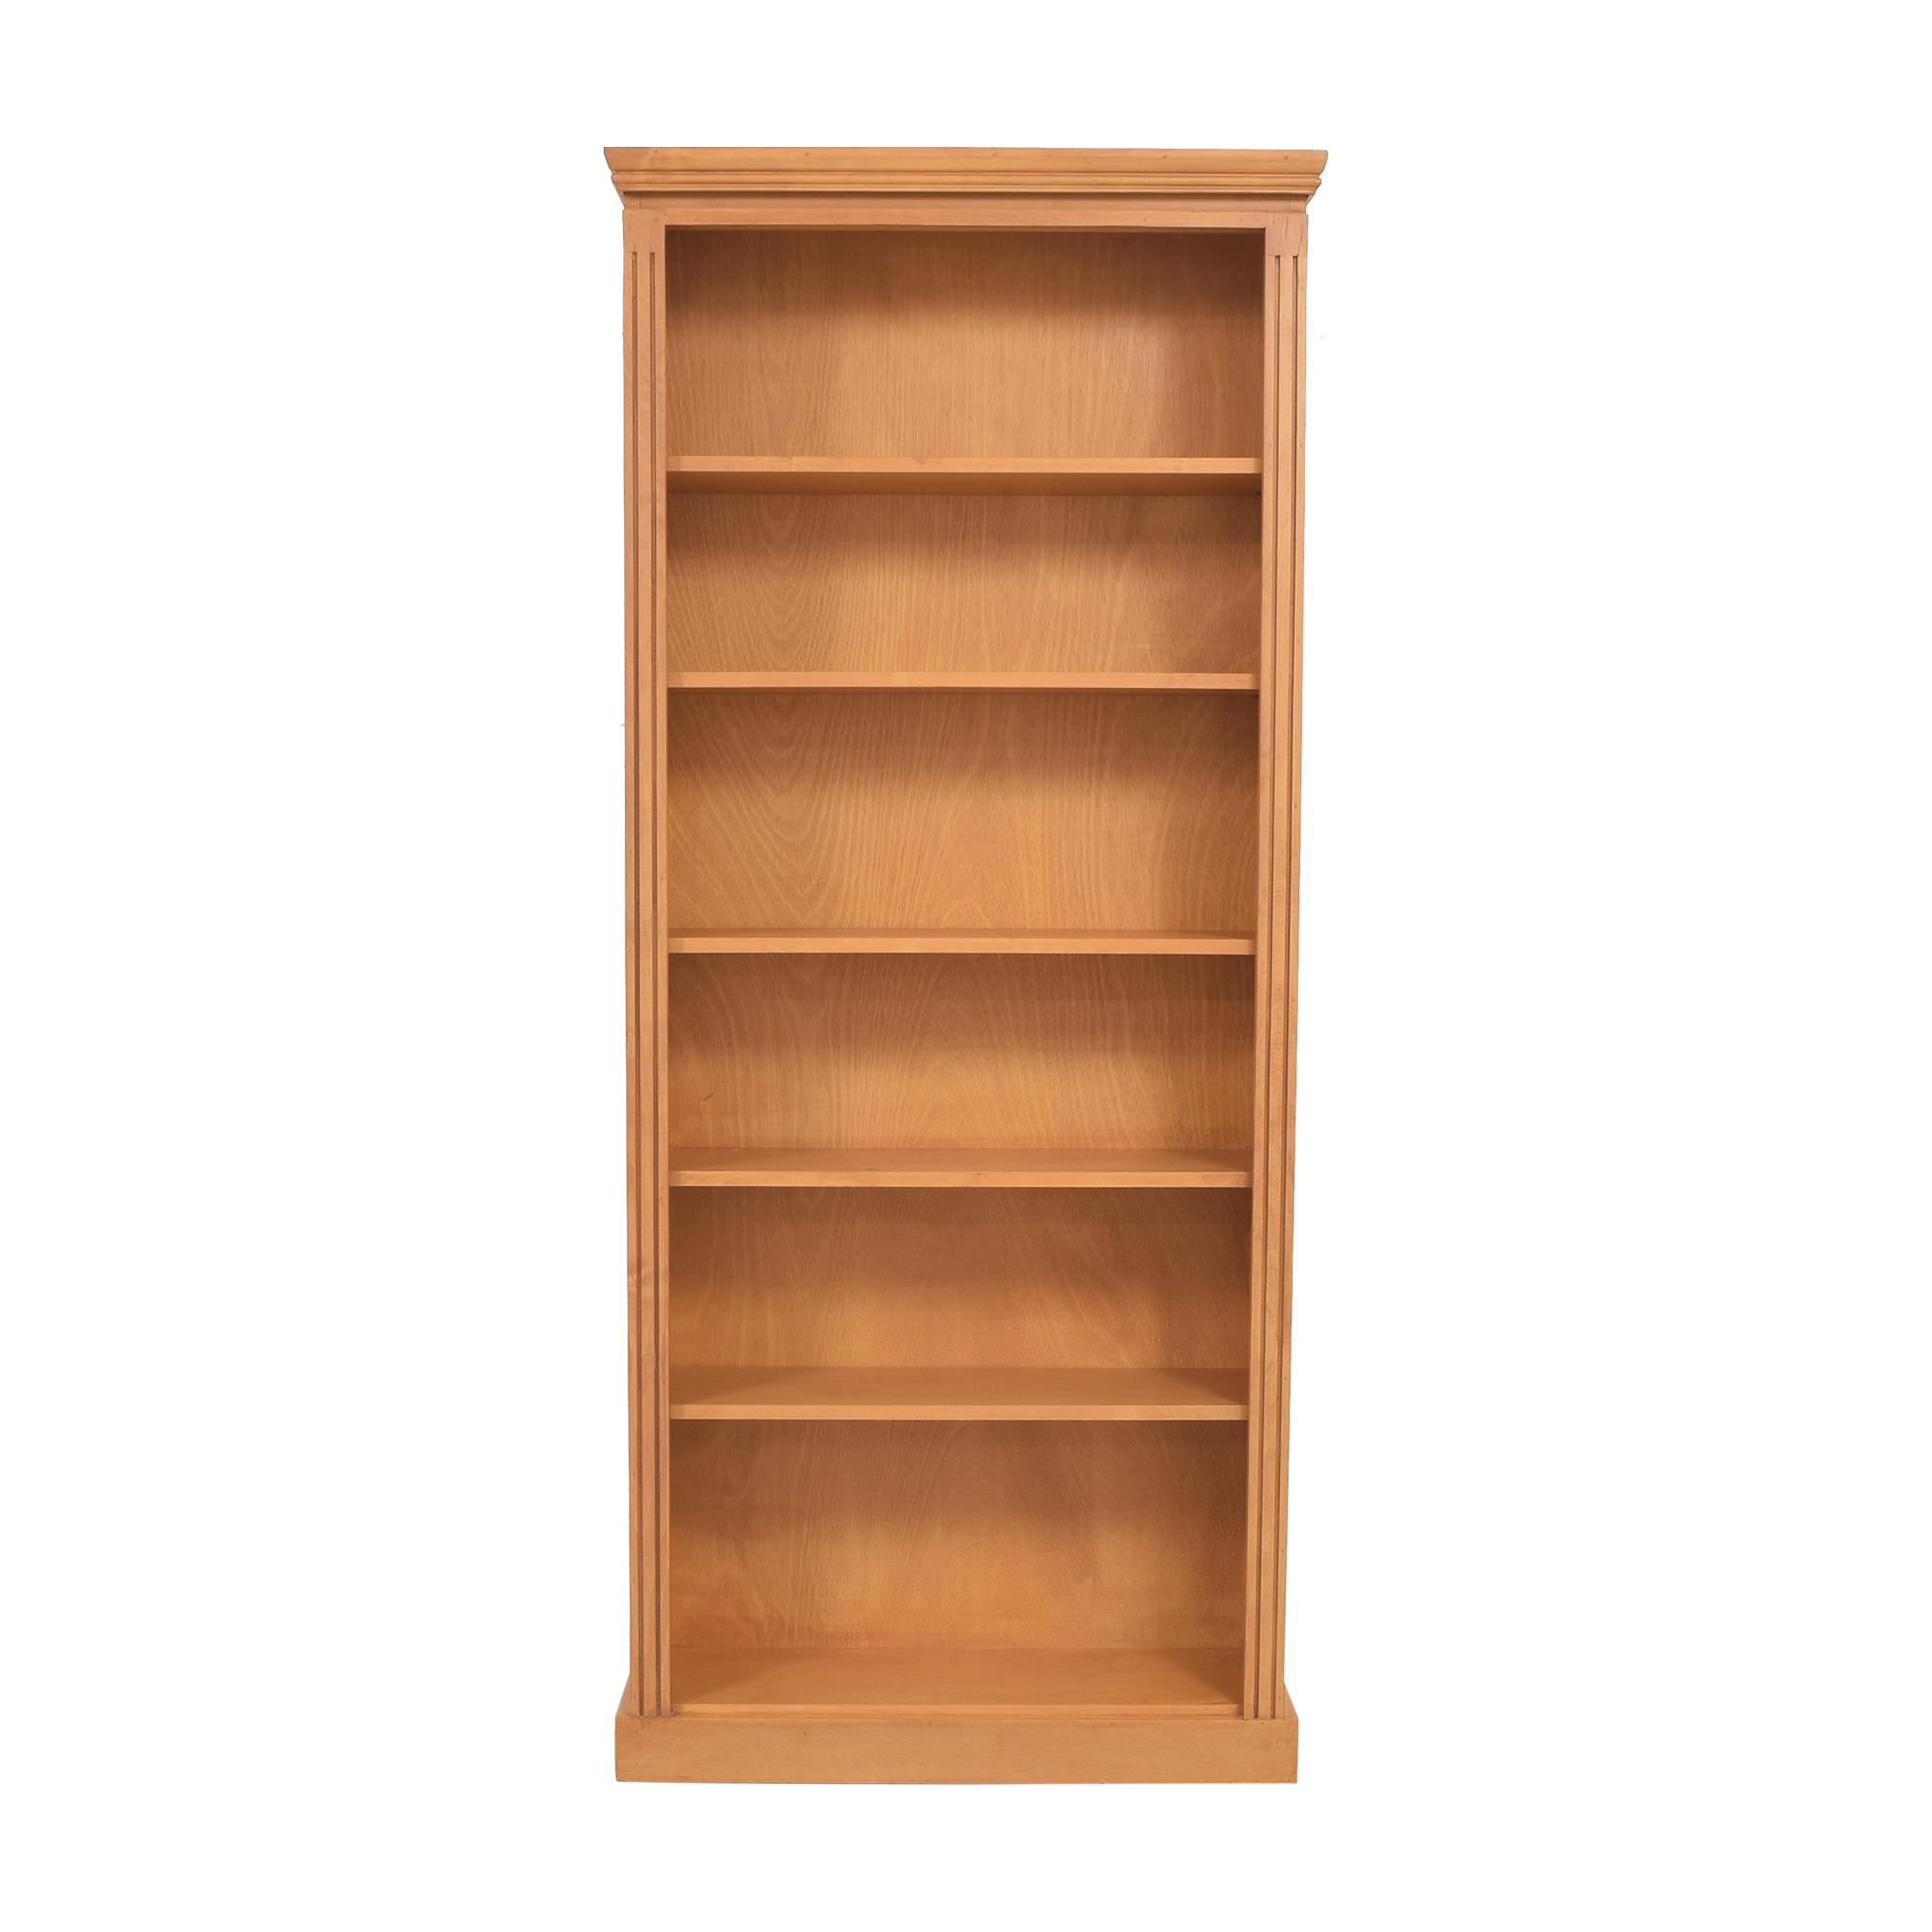 shop A-America Wood Furniture Custom Bookcase A-America Wood Furniture Bookcases & Shelving